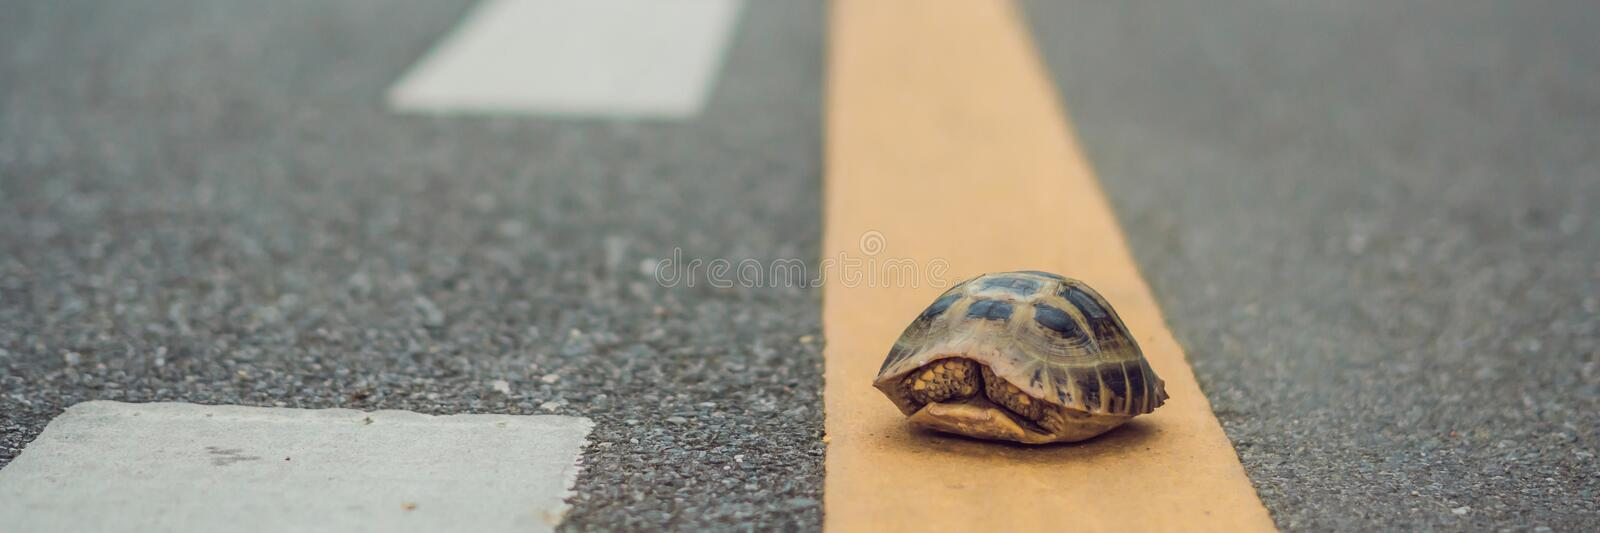 Turtle walking down a track for running in a concept of racing or getting to a goal no matter how long it takes BANNER, long forma. Turtle walking down a track stock photography